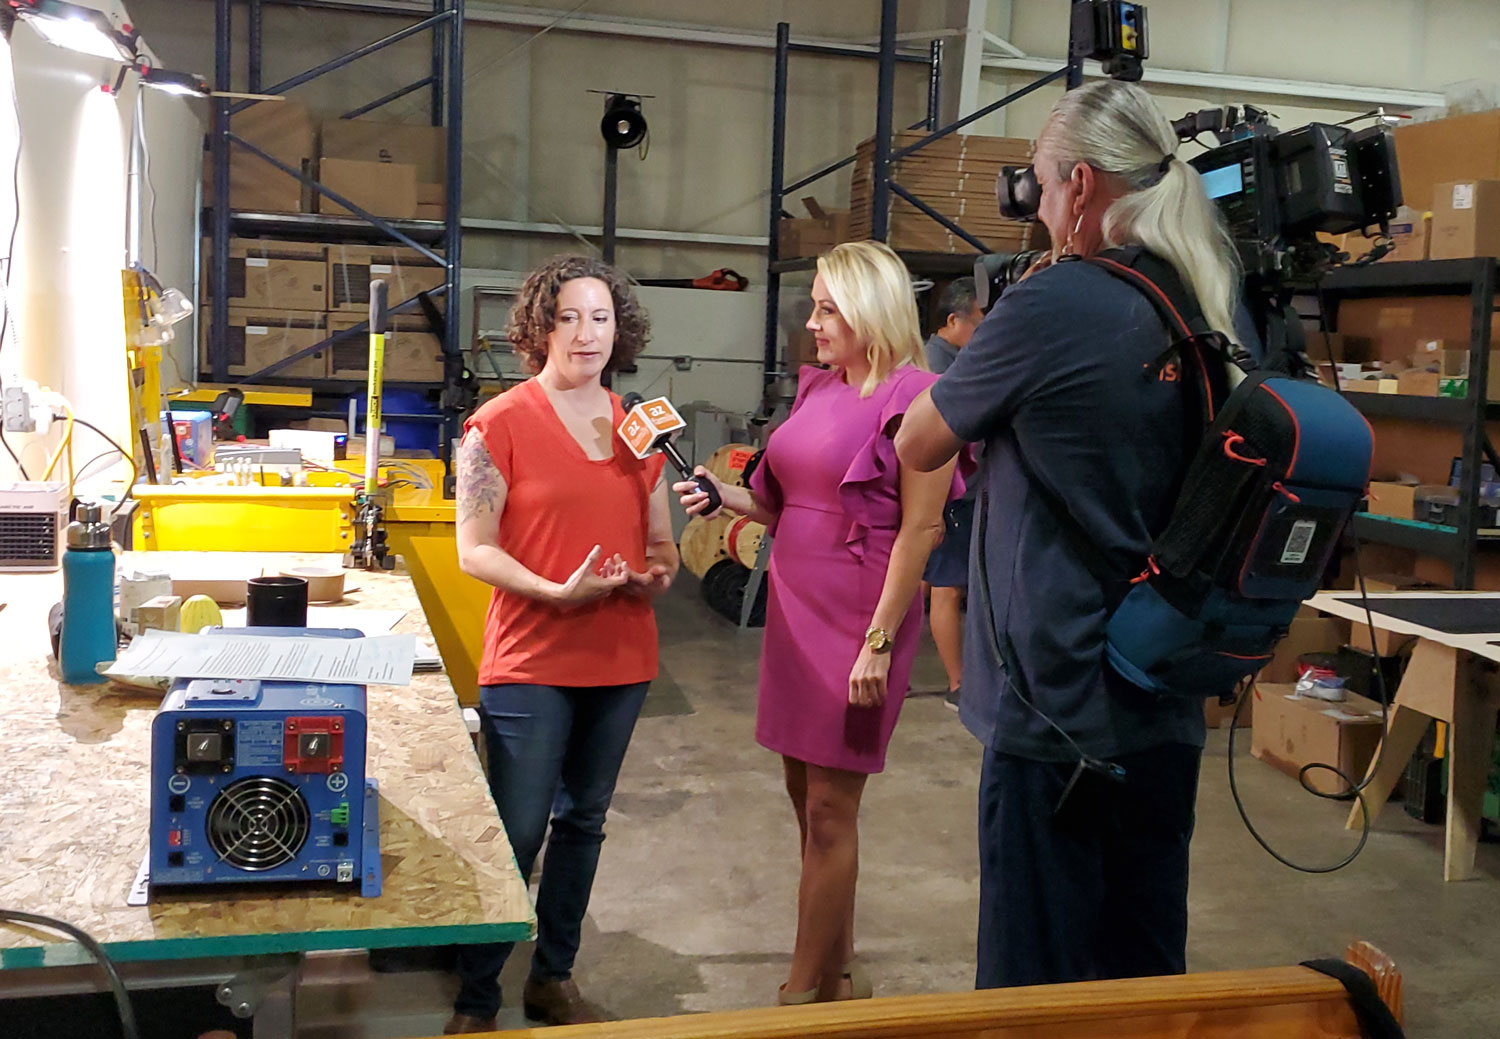 Steady Glow Digital Featured on 3TV as Green Business